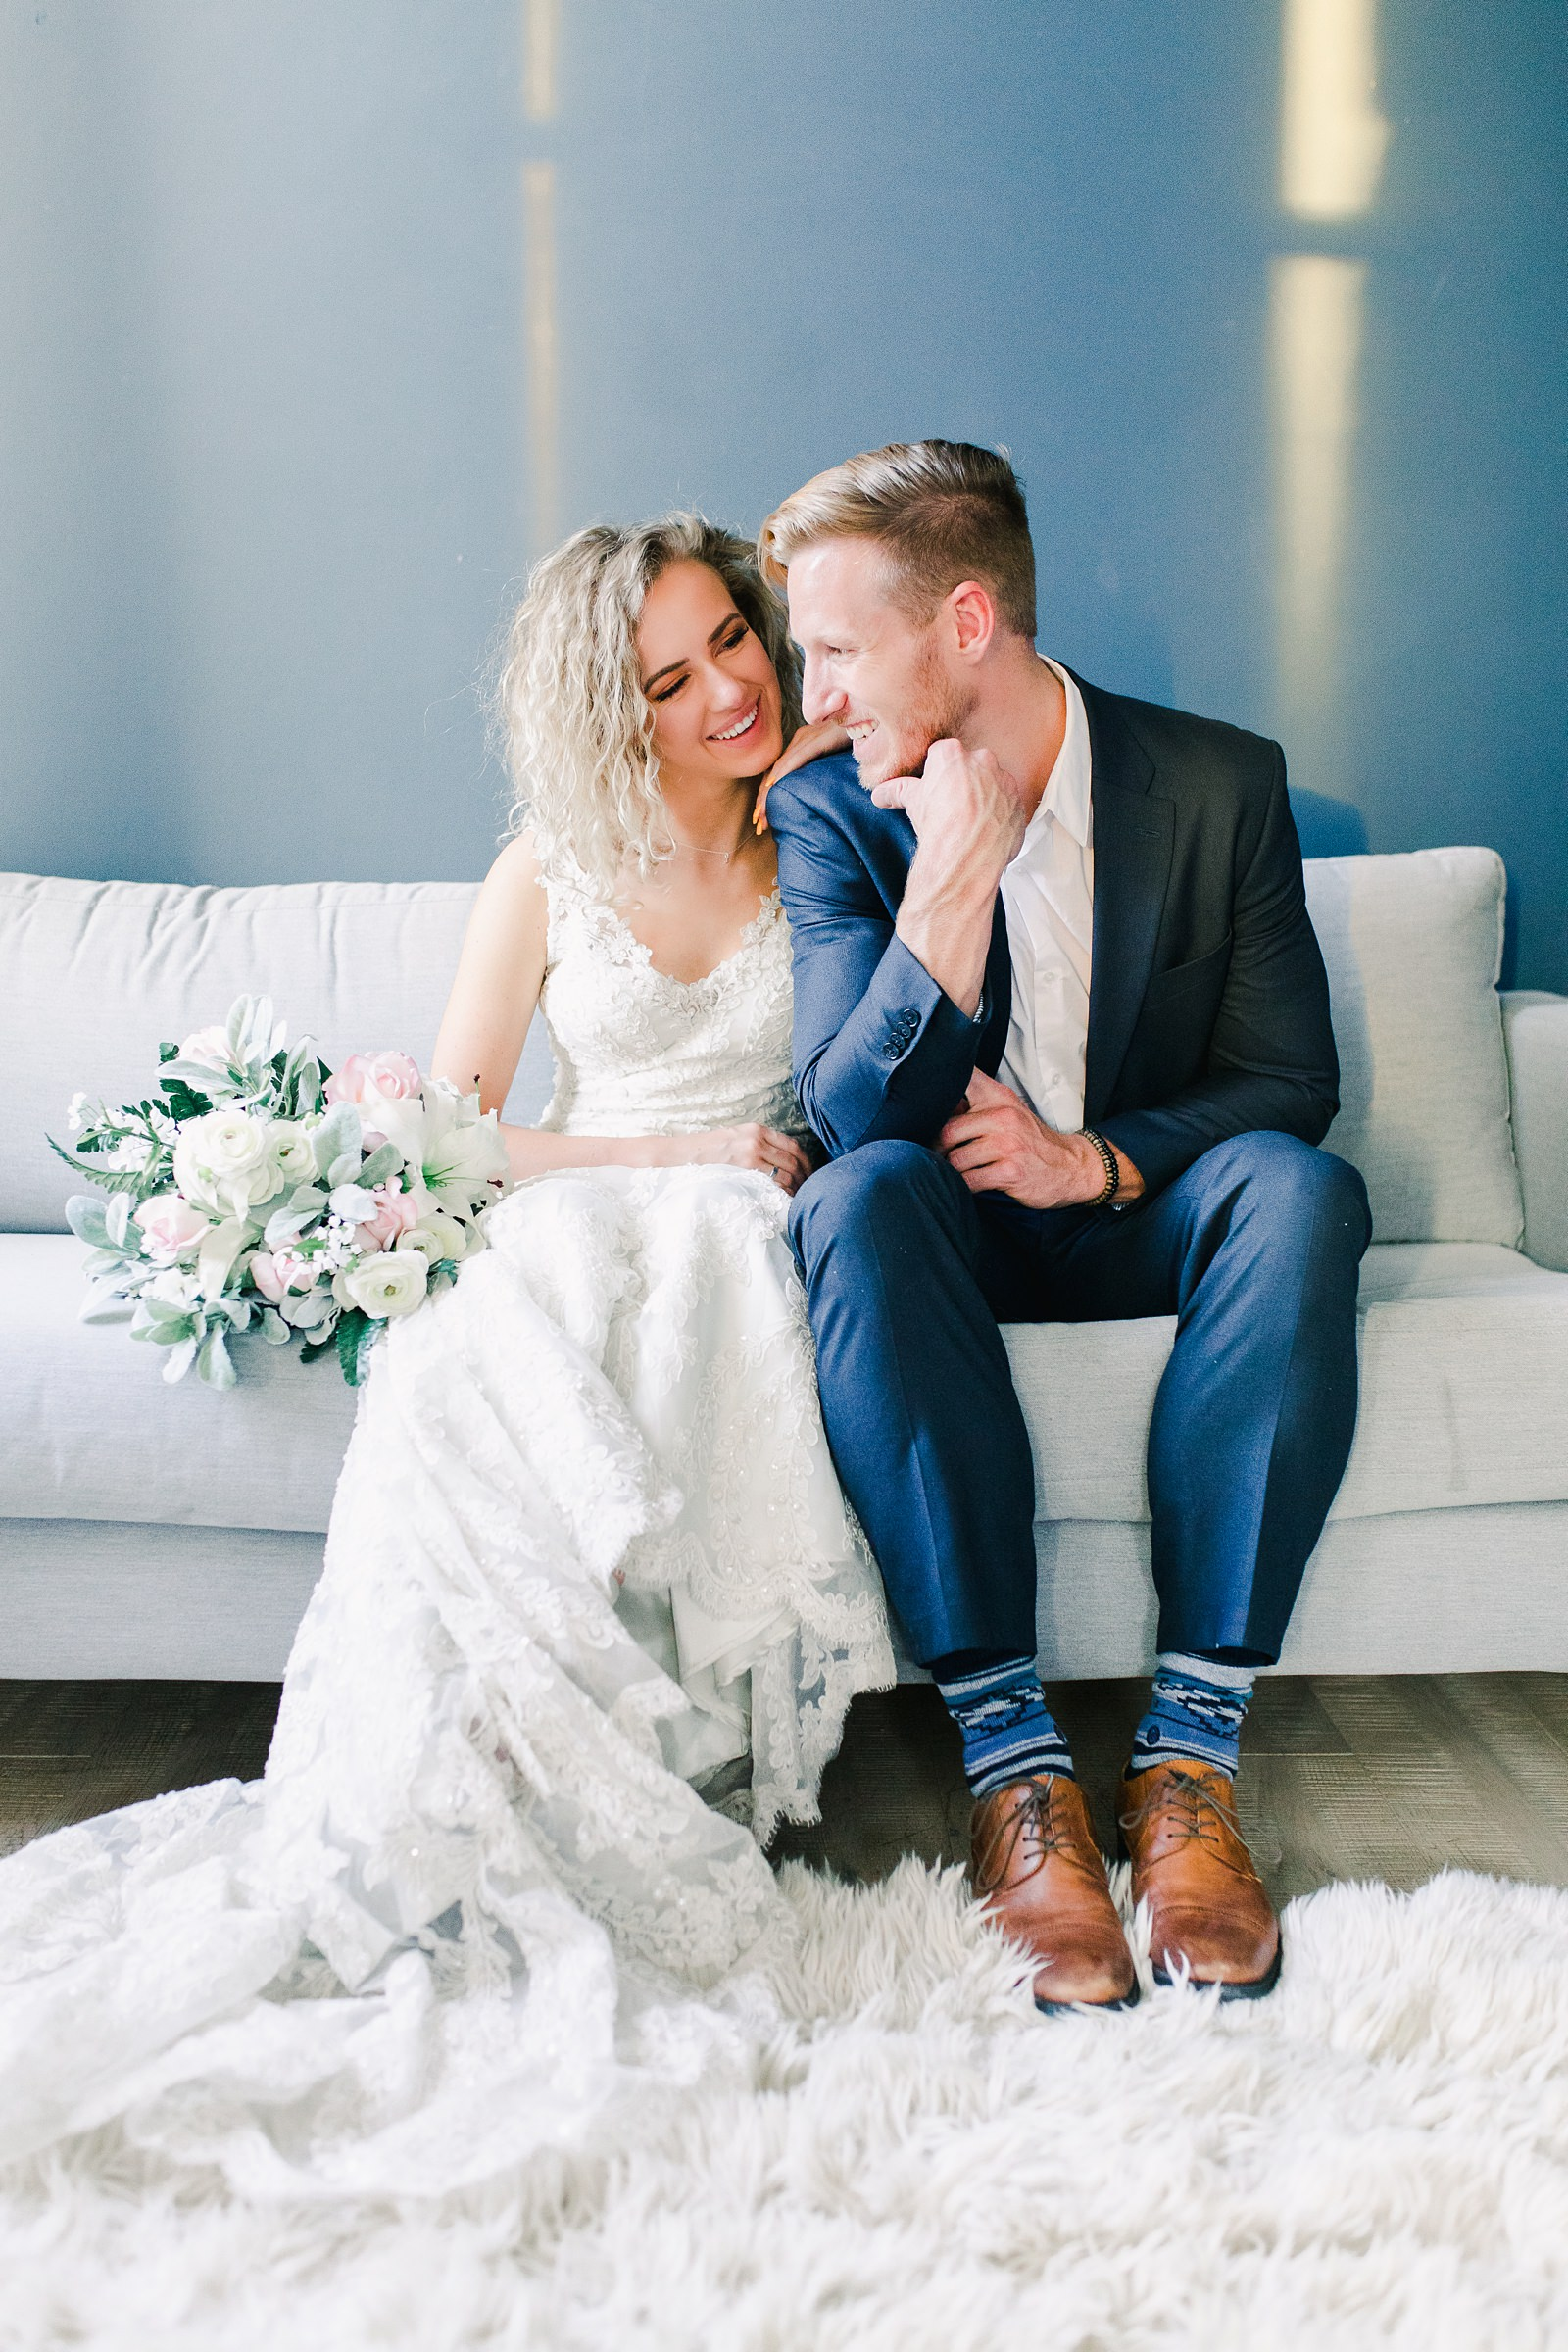 Utah wedding photography, bride and groom relaxed pose on couch in front of blue wall, white flowers wedding bouquet with greenery